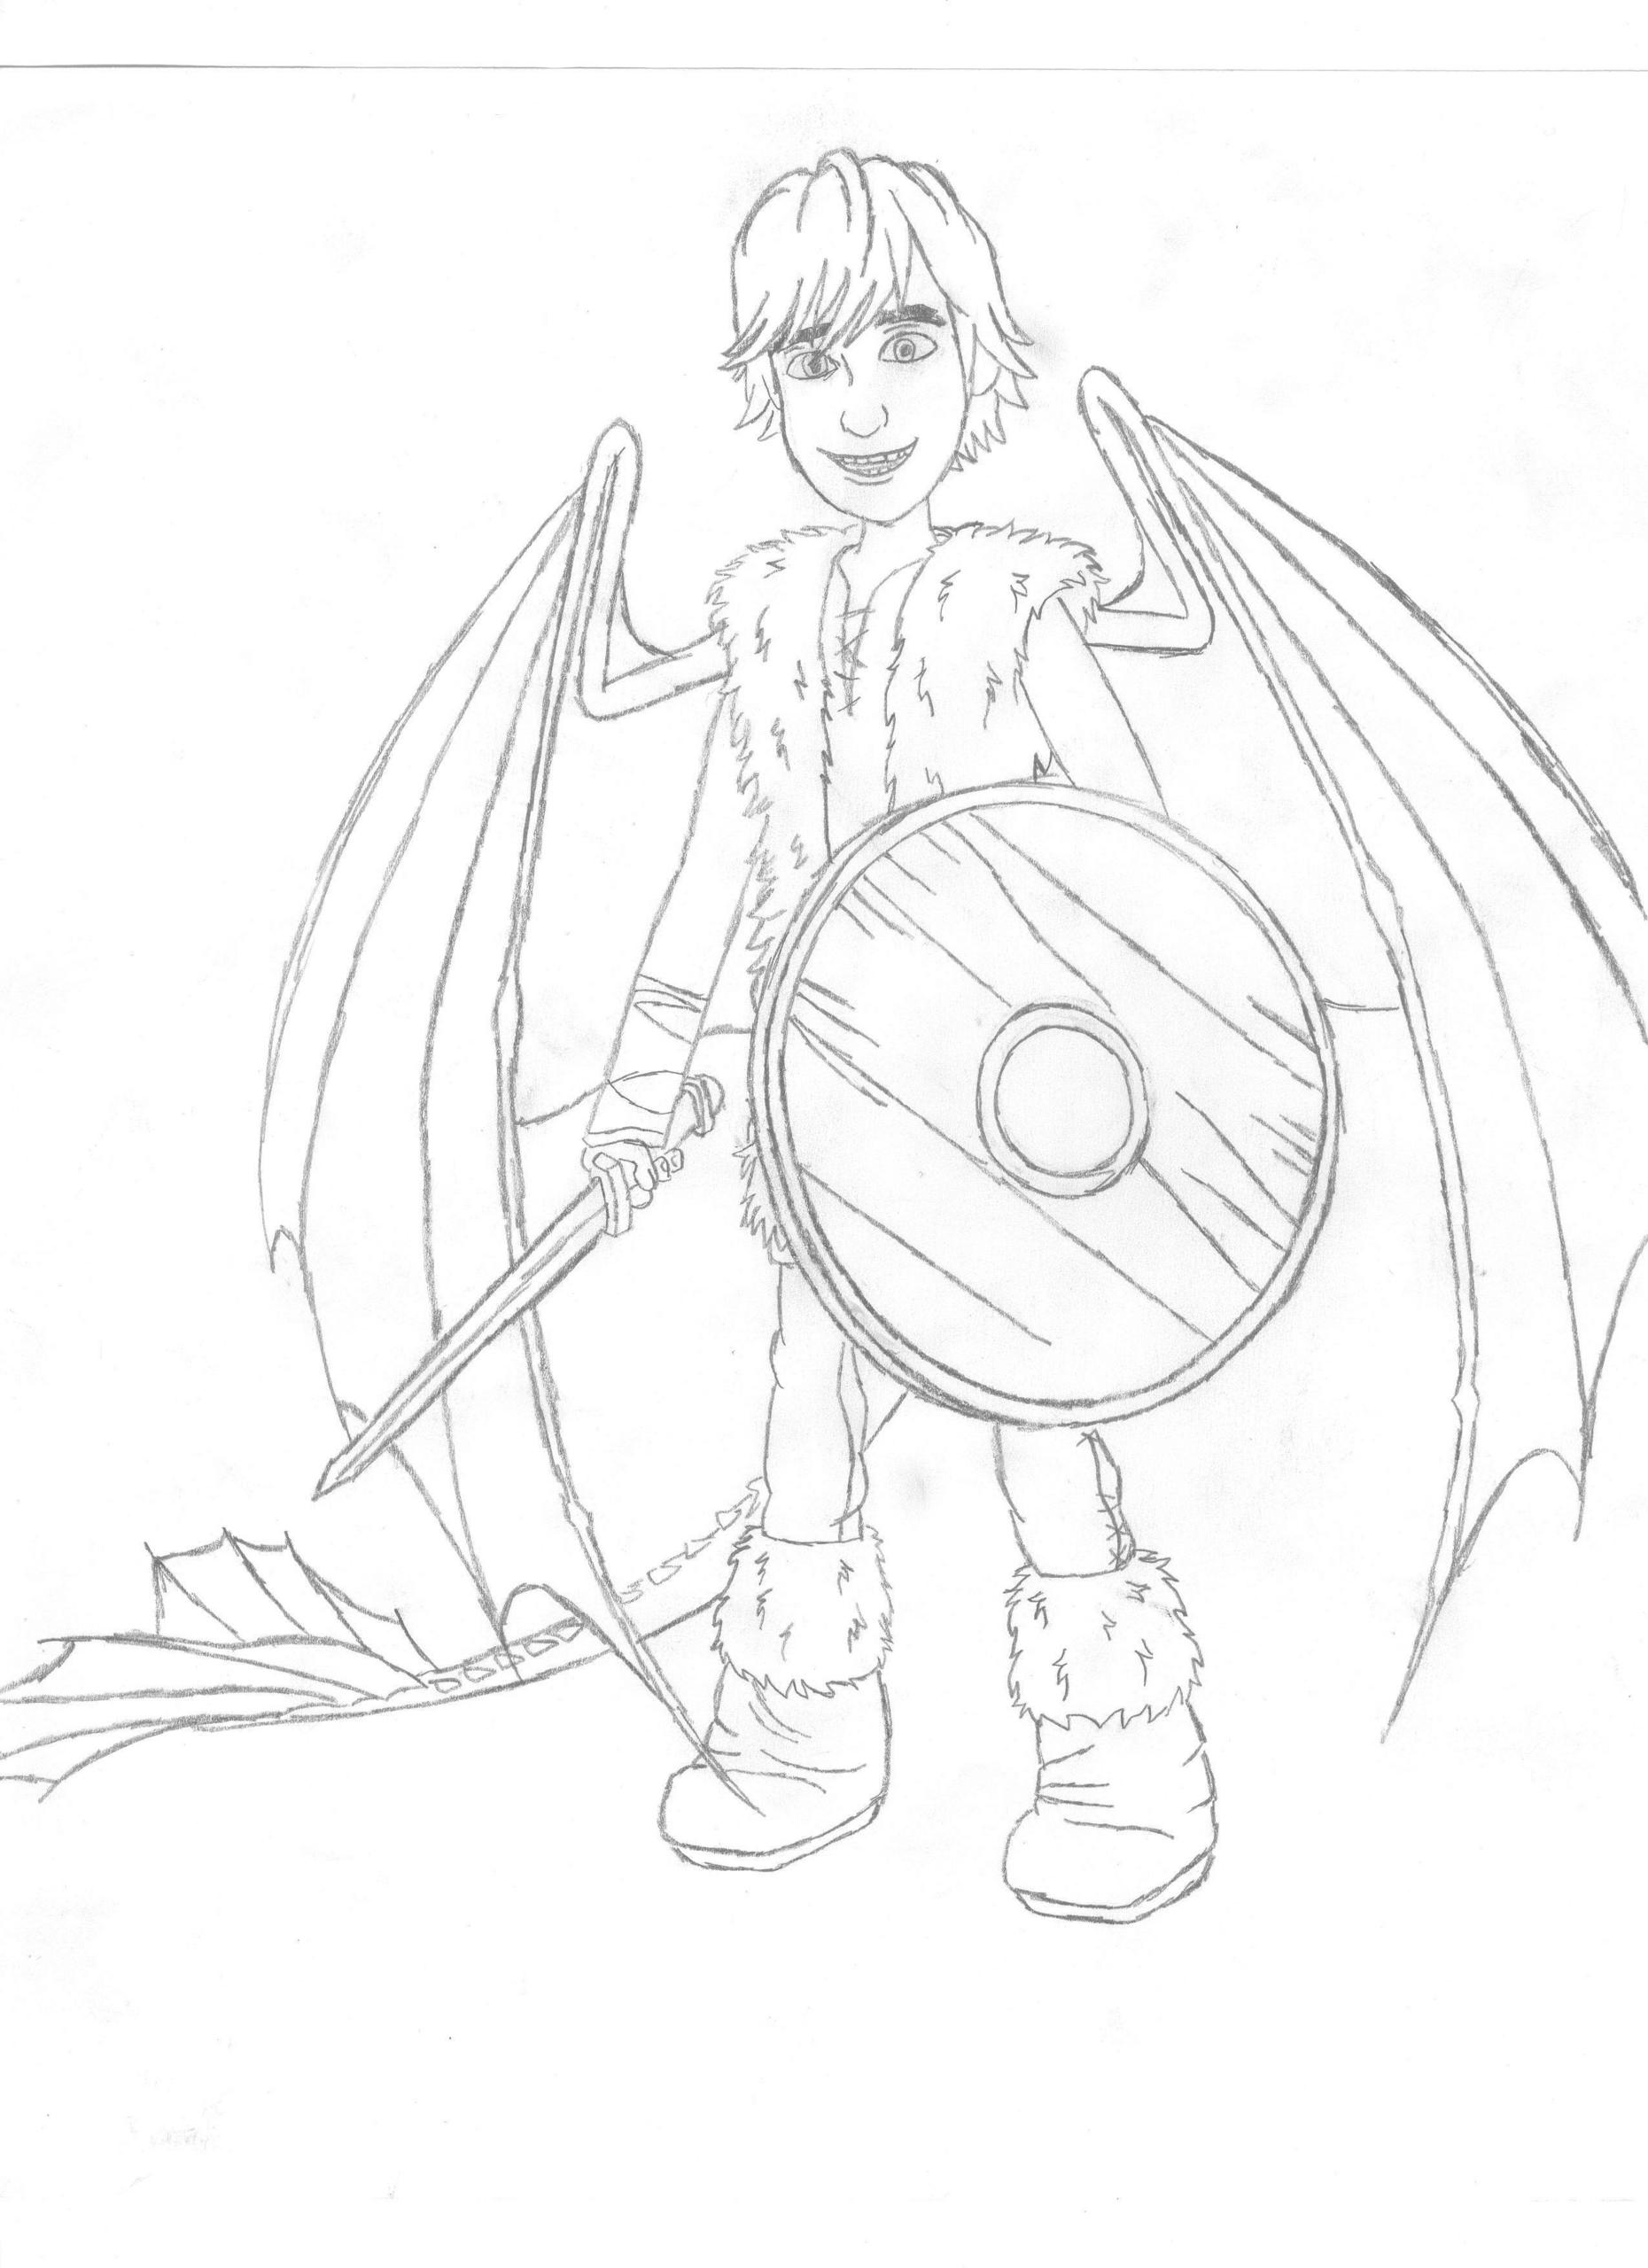 How to Train Your Dragon Blood of a Night Fury - rough draft Hiccup